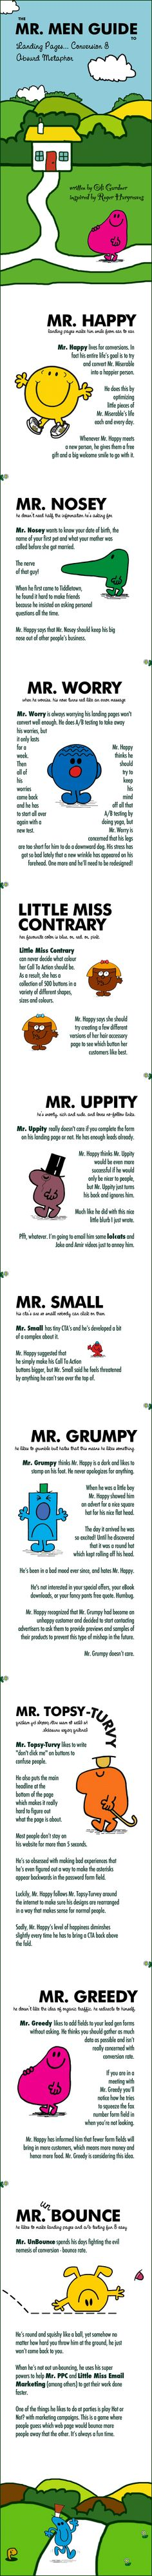 The MR. MEN Guide to Landing Pages, Conversion & Absurd Metaphor